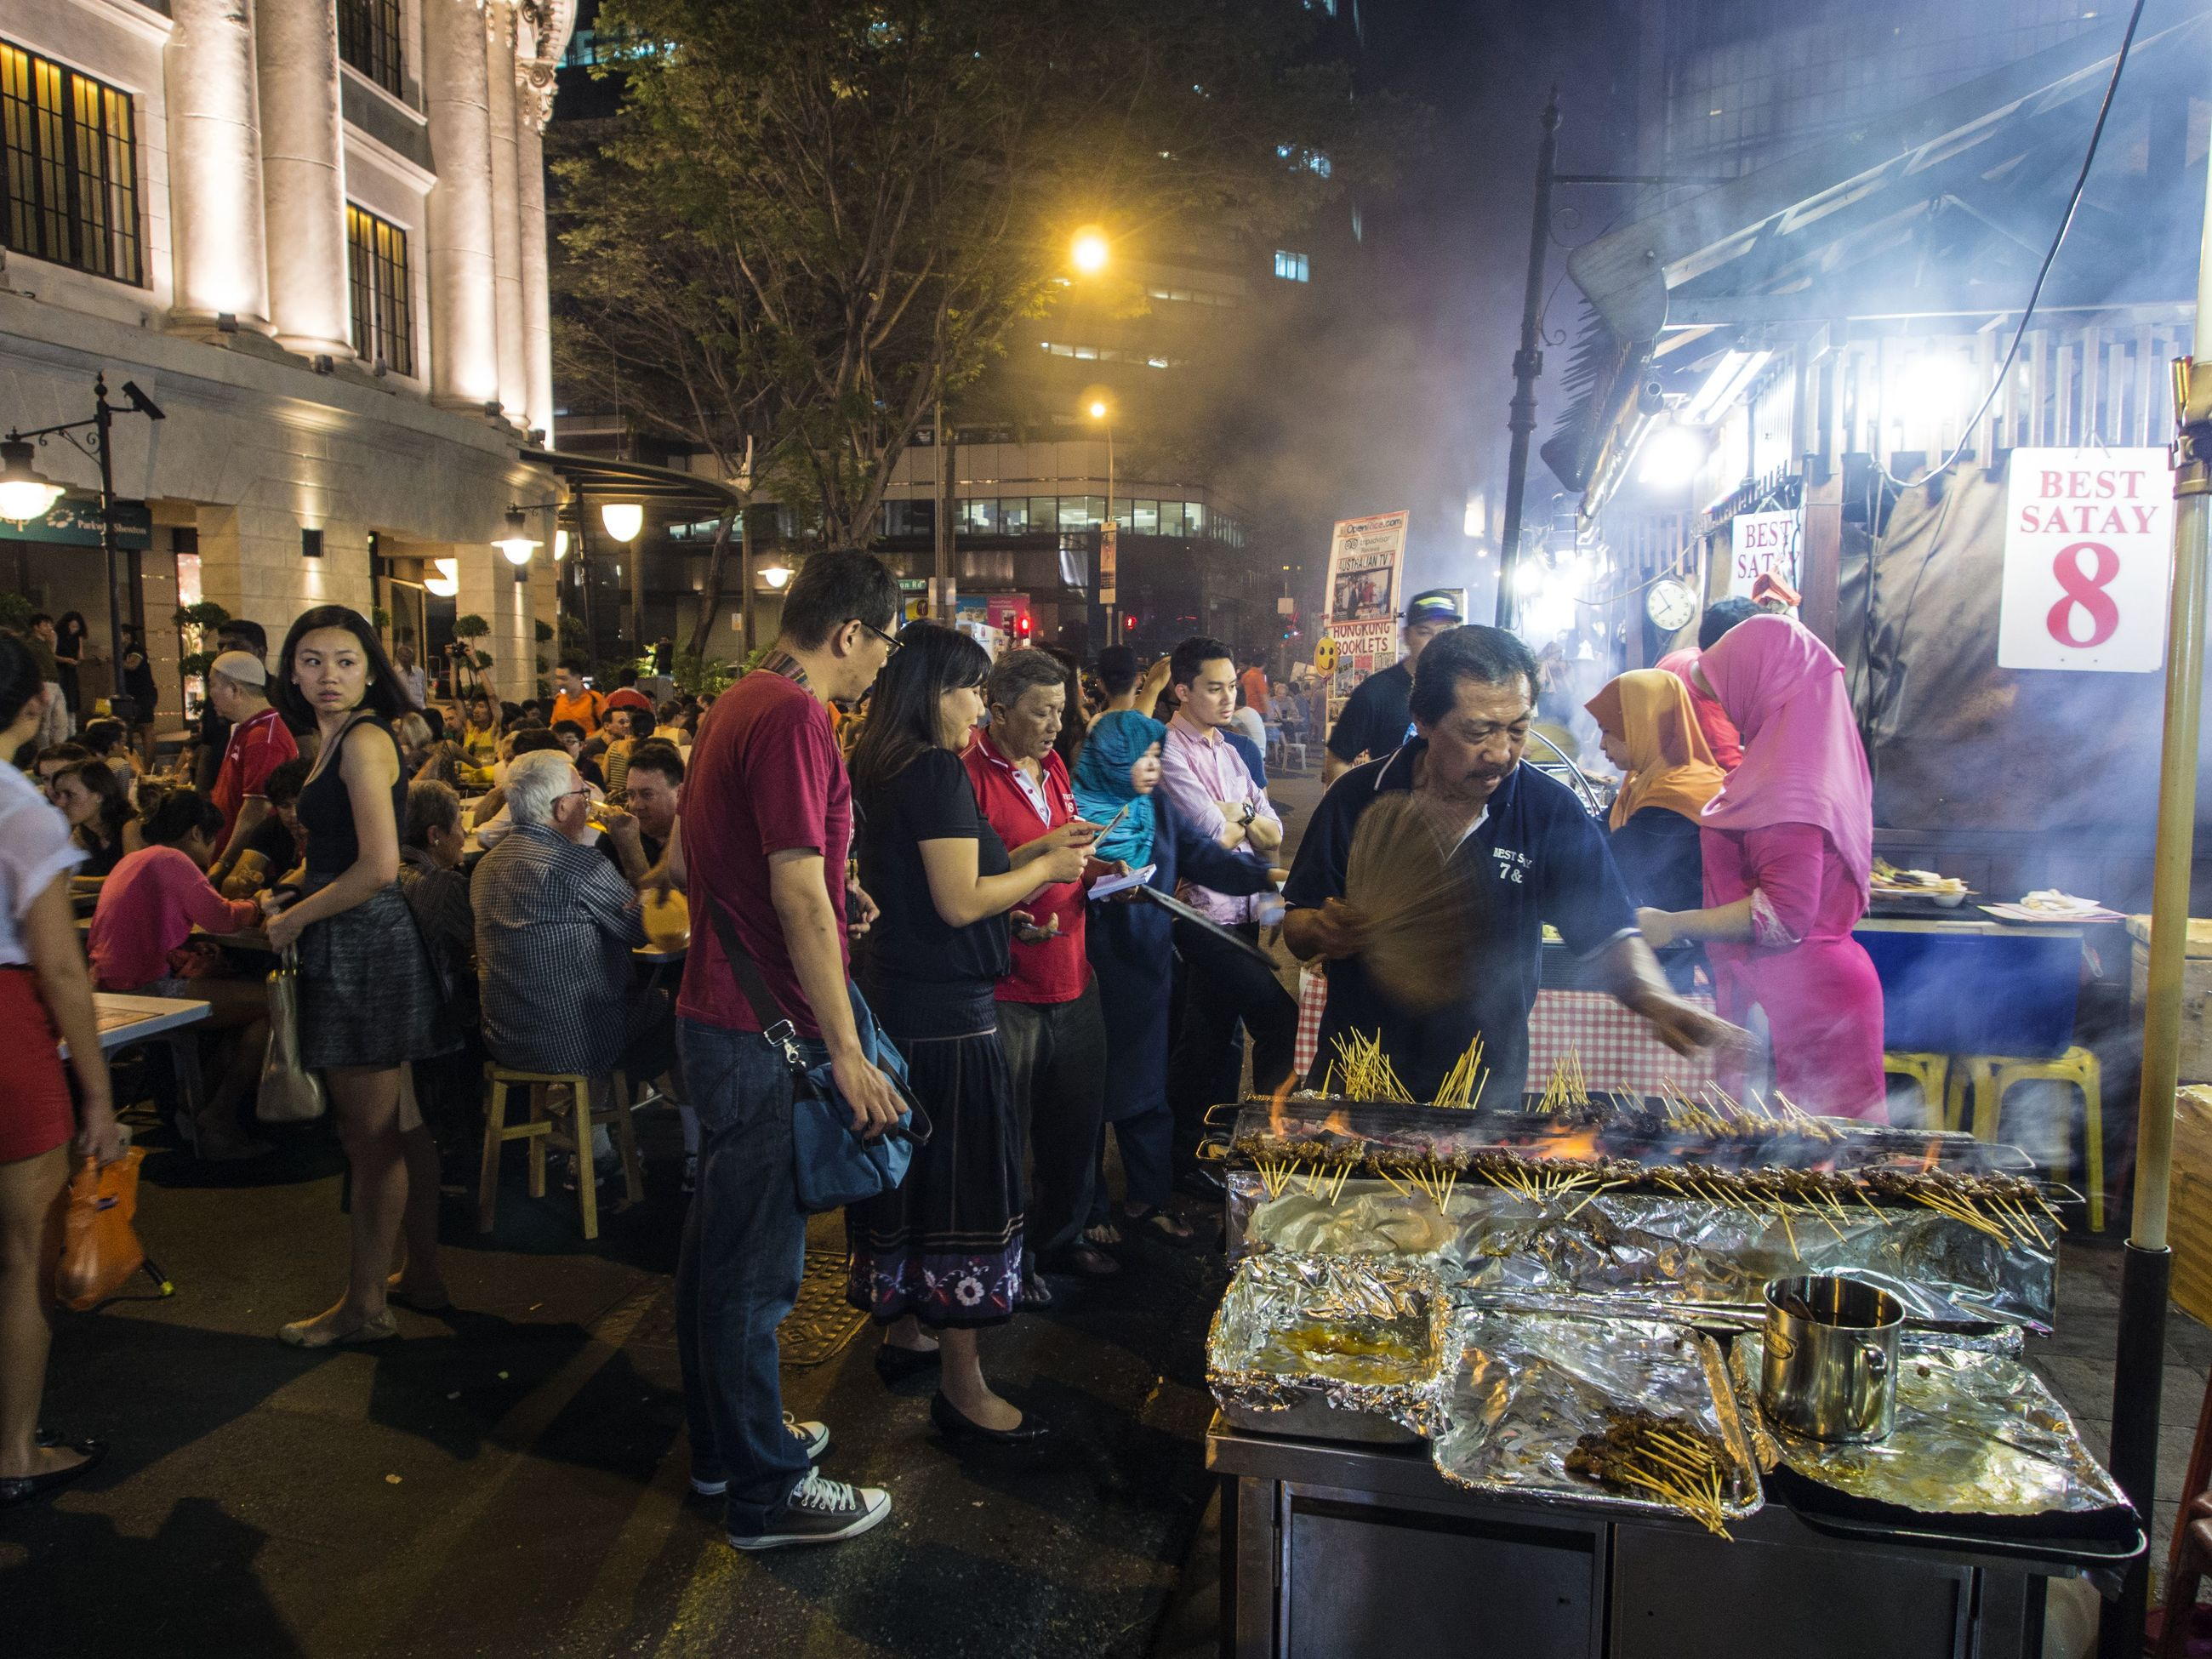 men, person, large group of people, lifestyles, market, market stall, crowd, retail, night, leisure activity, celebration, illuminated, for sale, street, standing, event, selling, shopping, casual clothing